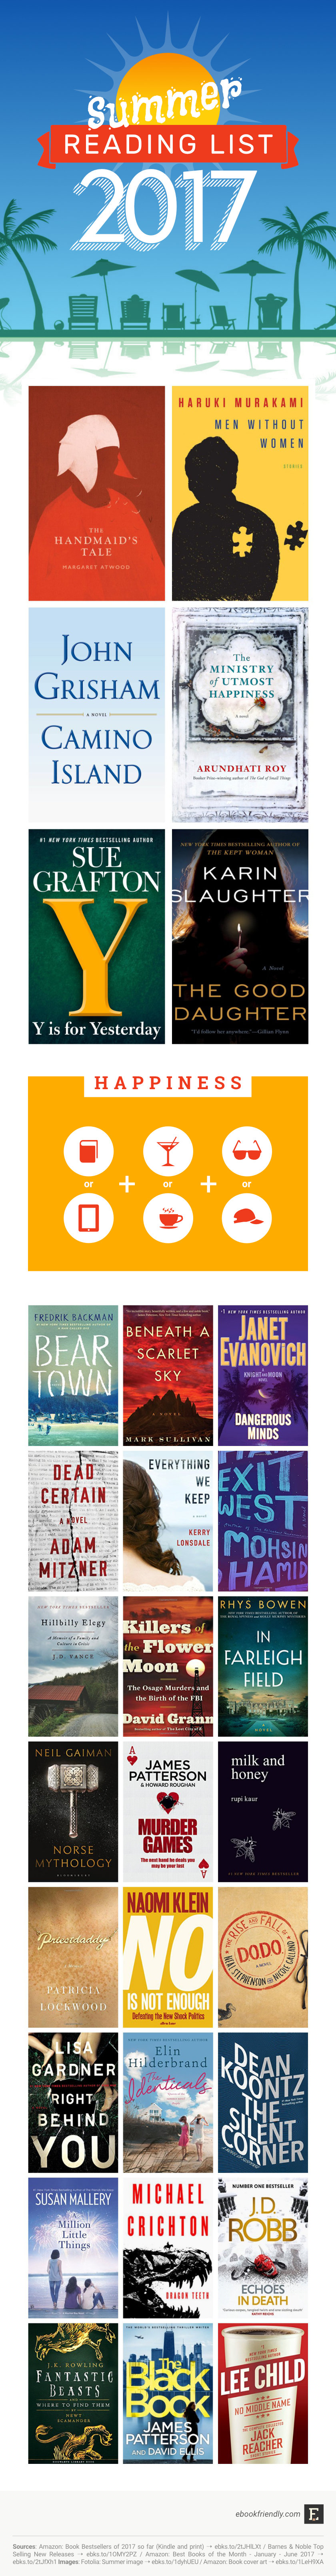 Books to add to your summer reading list 2017   Ebook Friendly